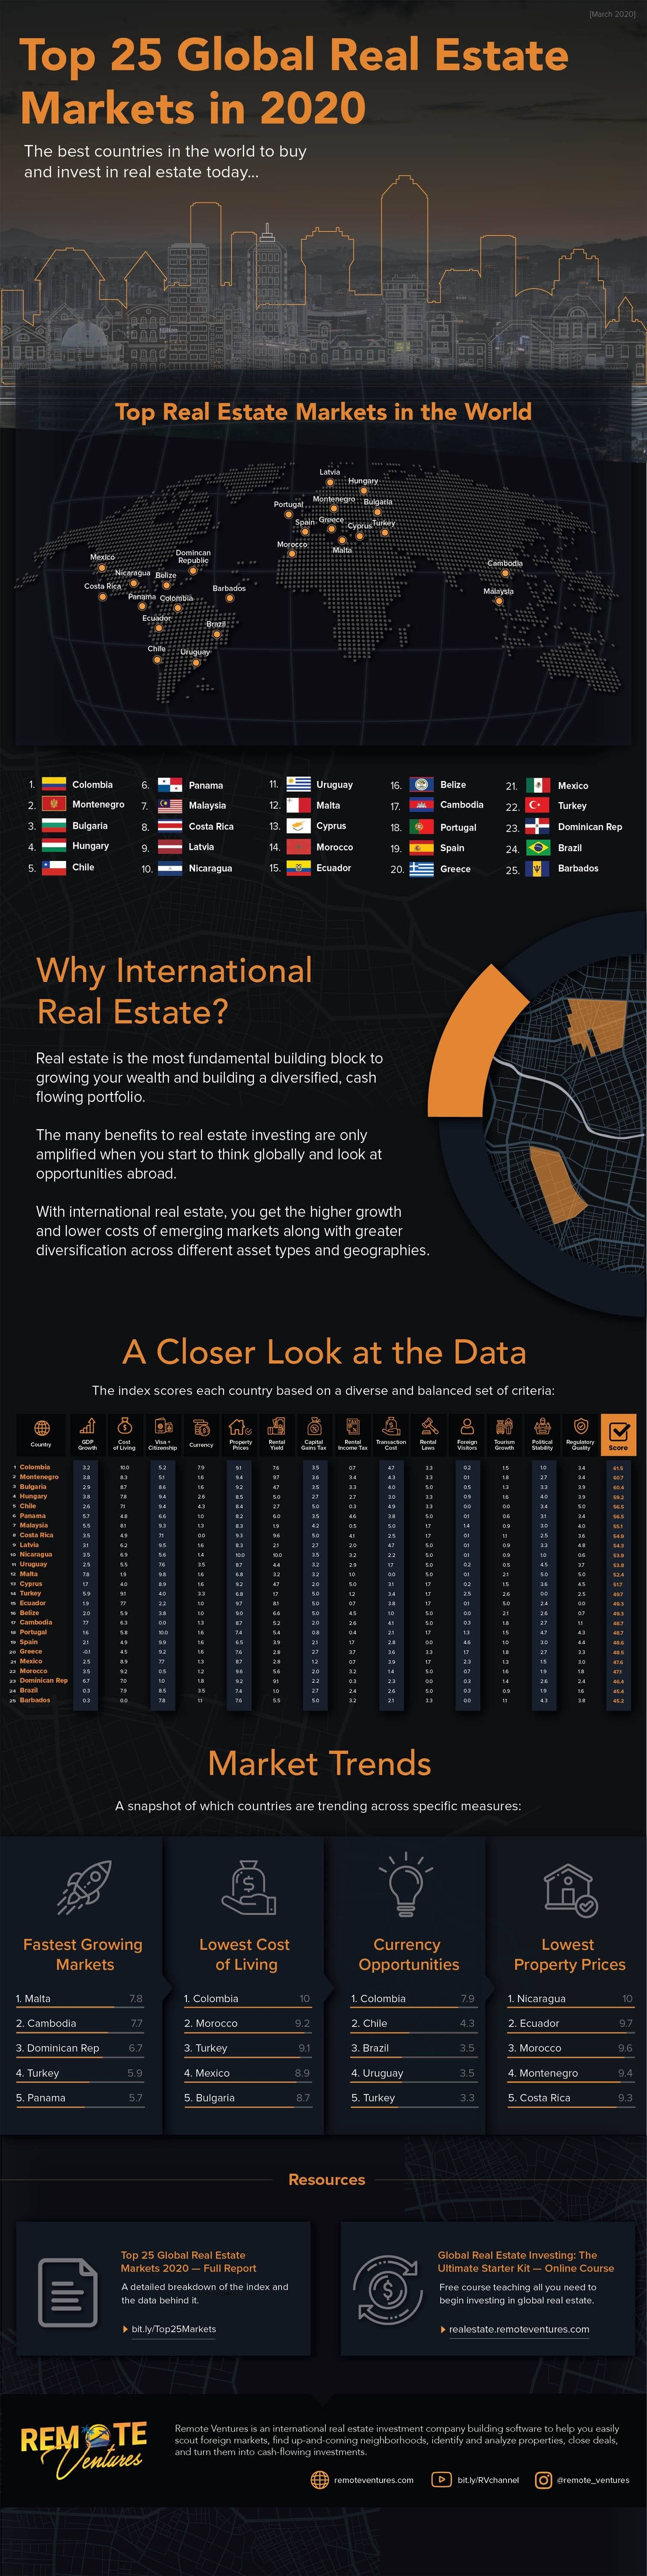 Top 25 Global Real Estate Markets in 2020 #infographic